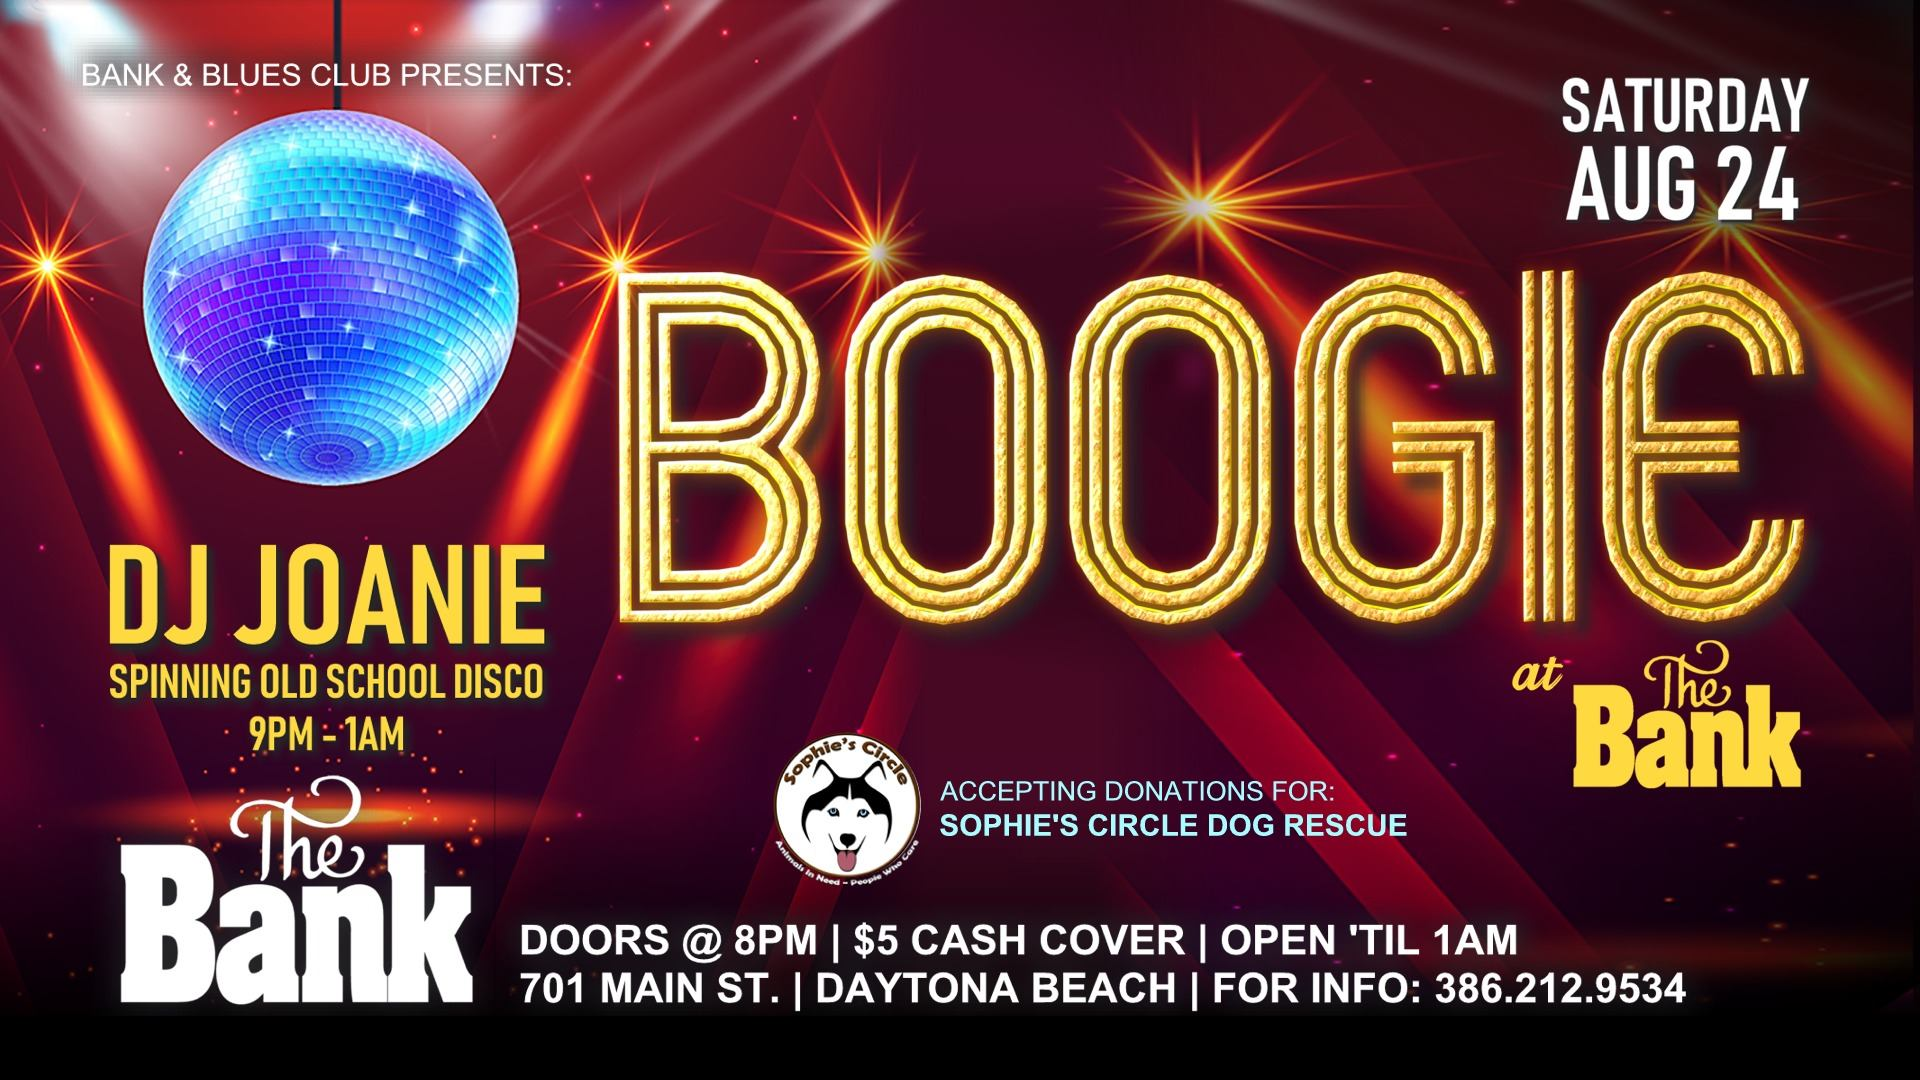 Boogie at The Bank with DJ Joanie